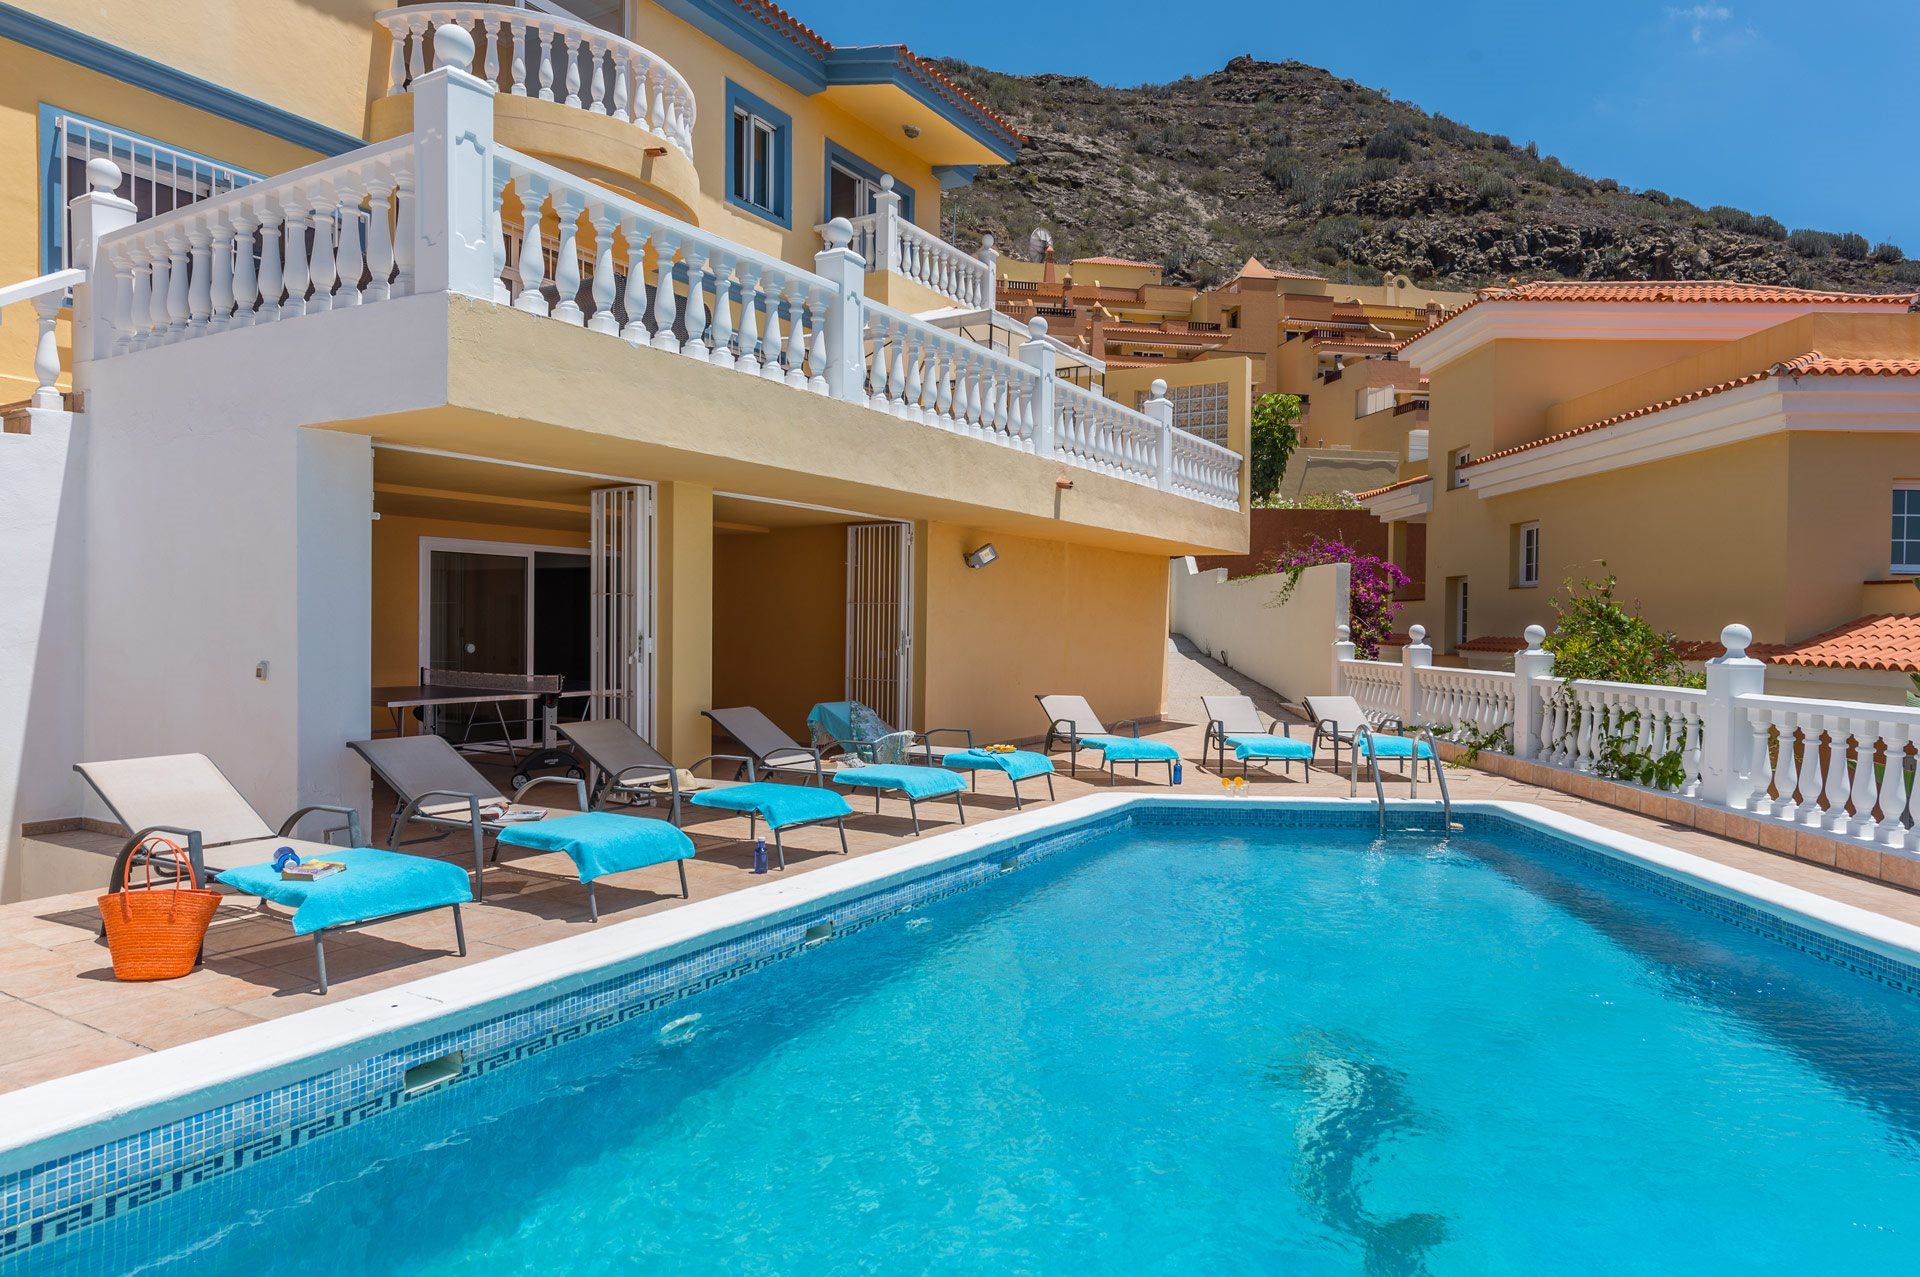 Tenerife | Unique Luxury Villa For Sale | €895.000 with guaranteed rental income of 52.000€ per year(optional)